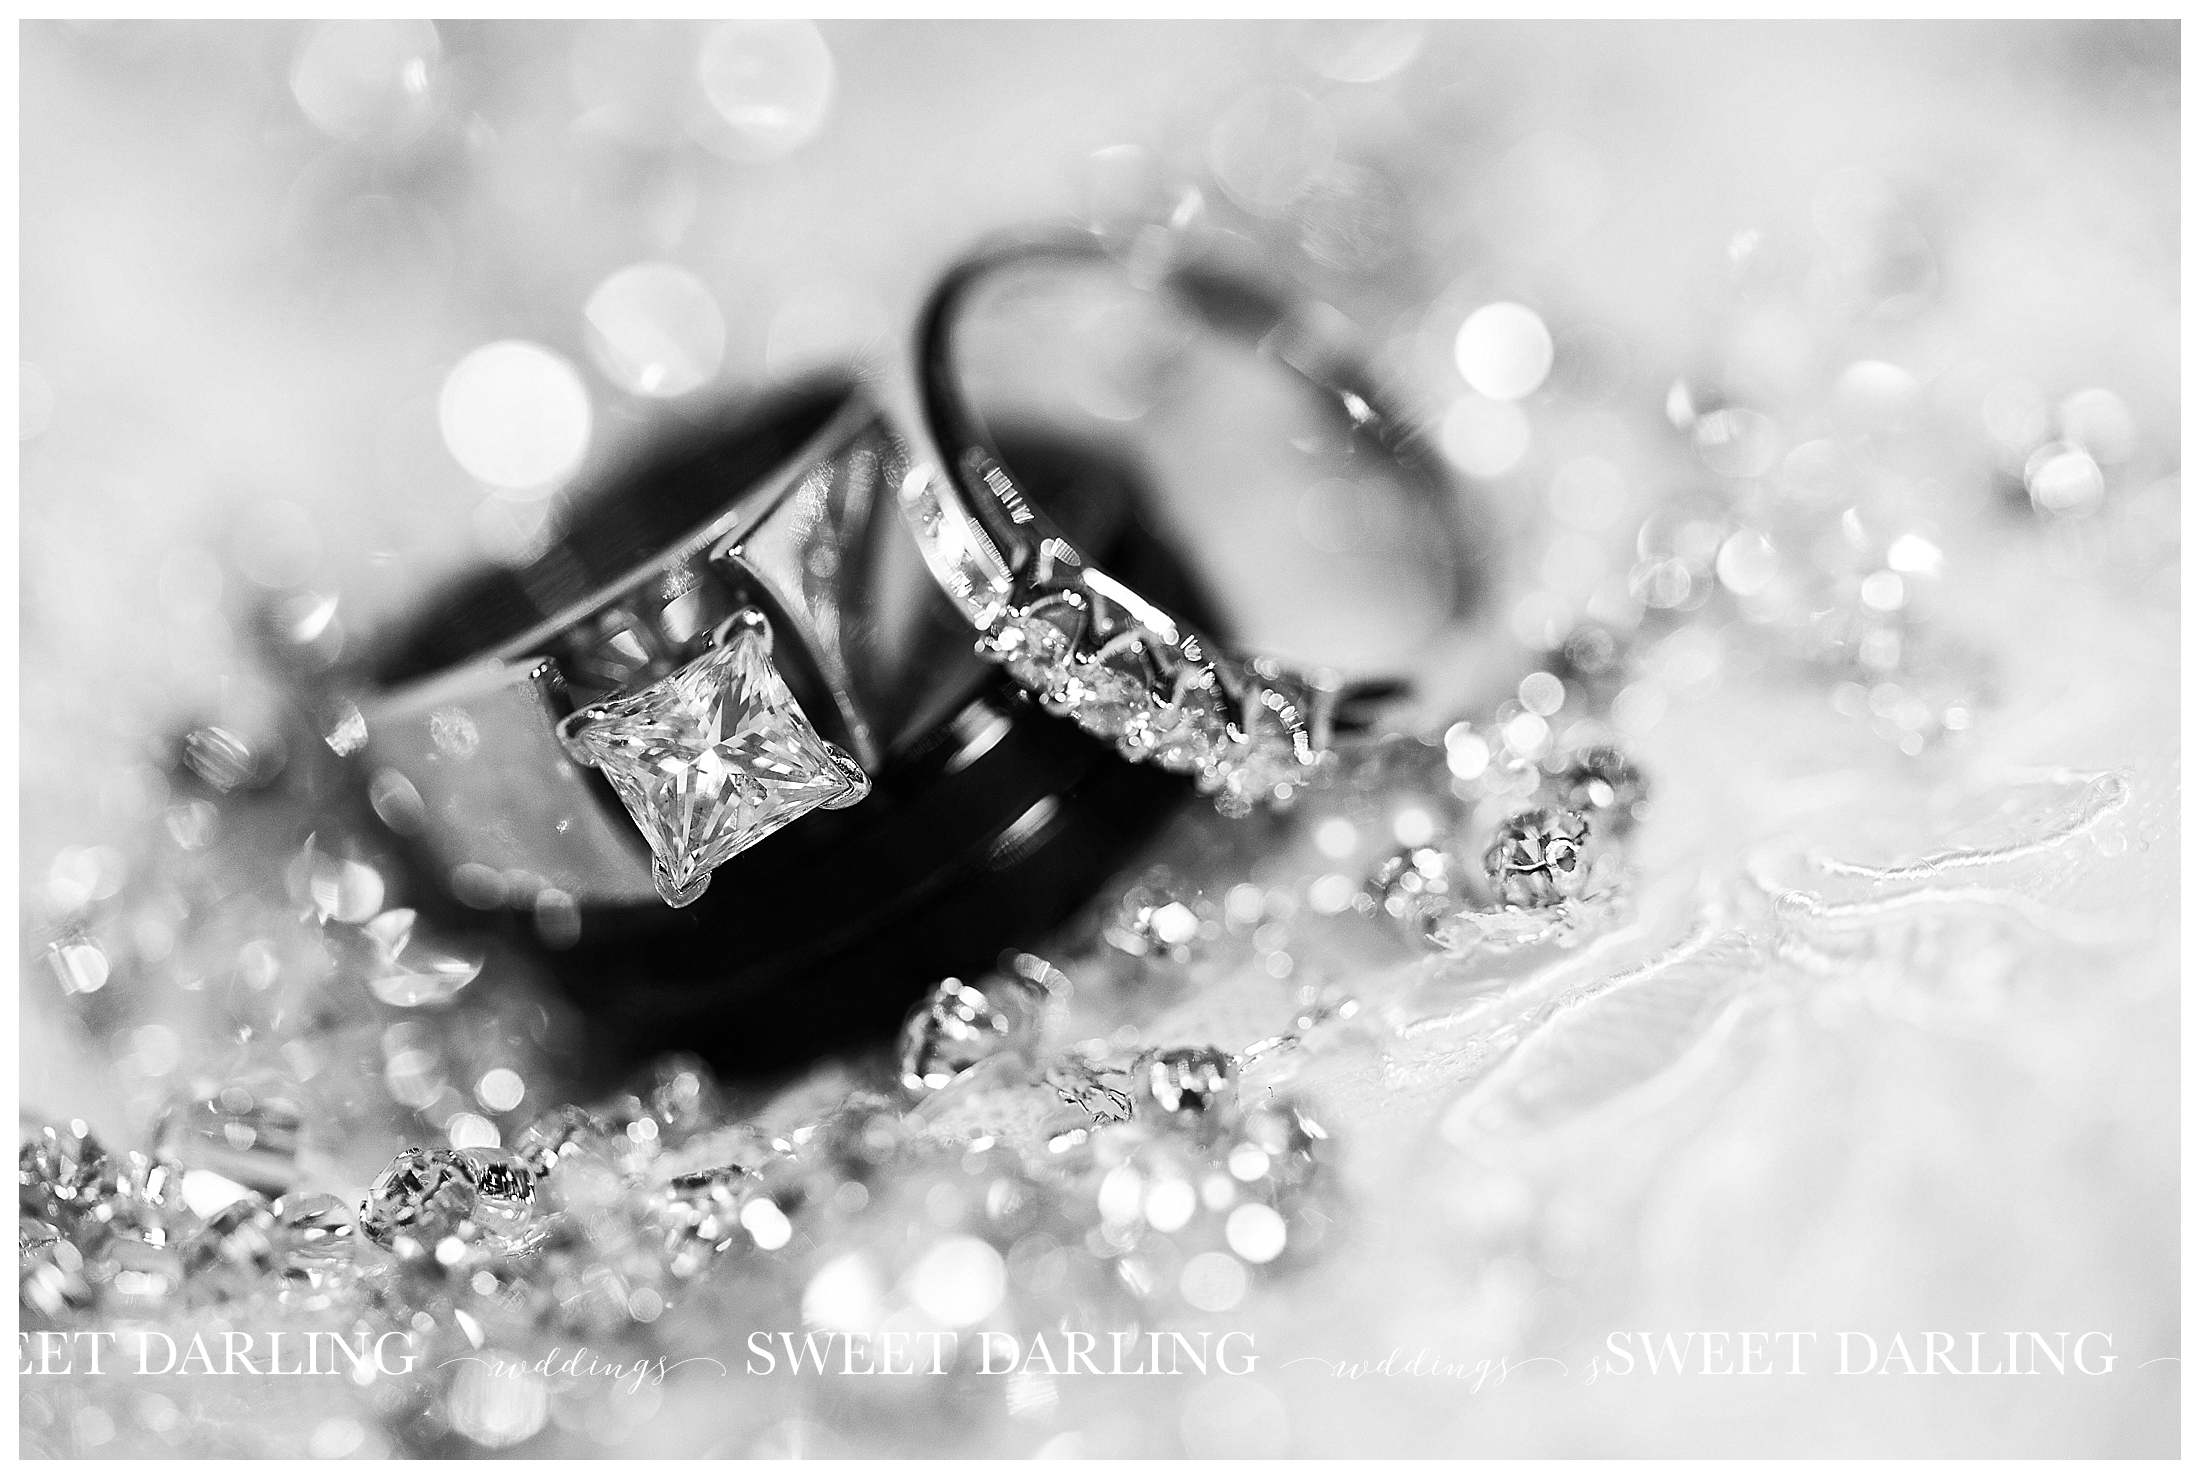 champaign-illinois-wedding-photographer-university-ffa-sweet-darling_1857.jpg